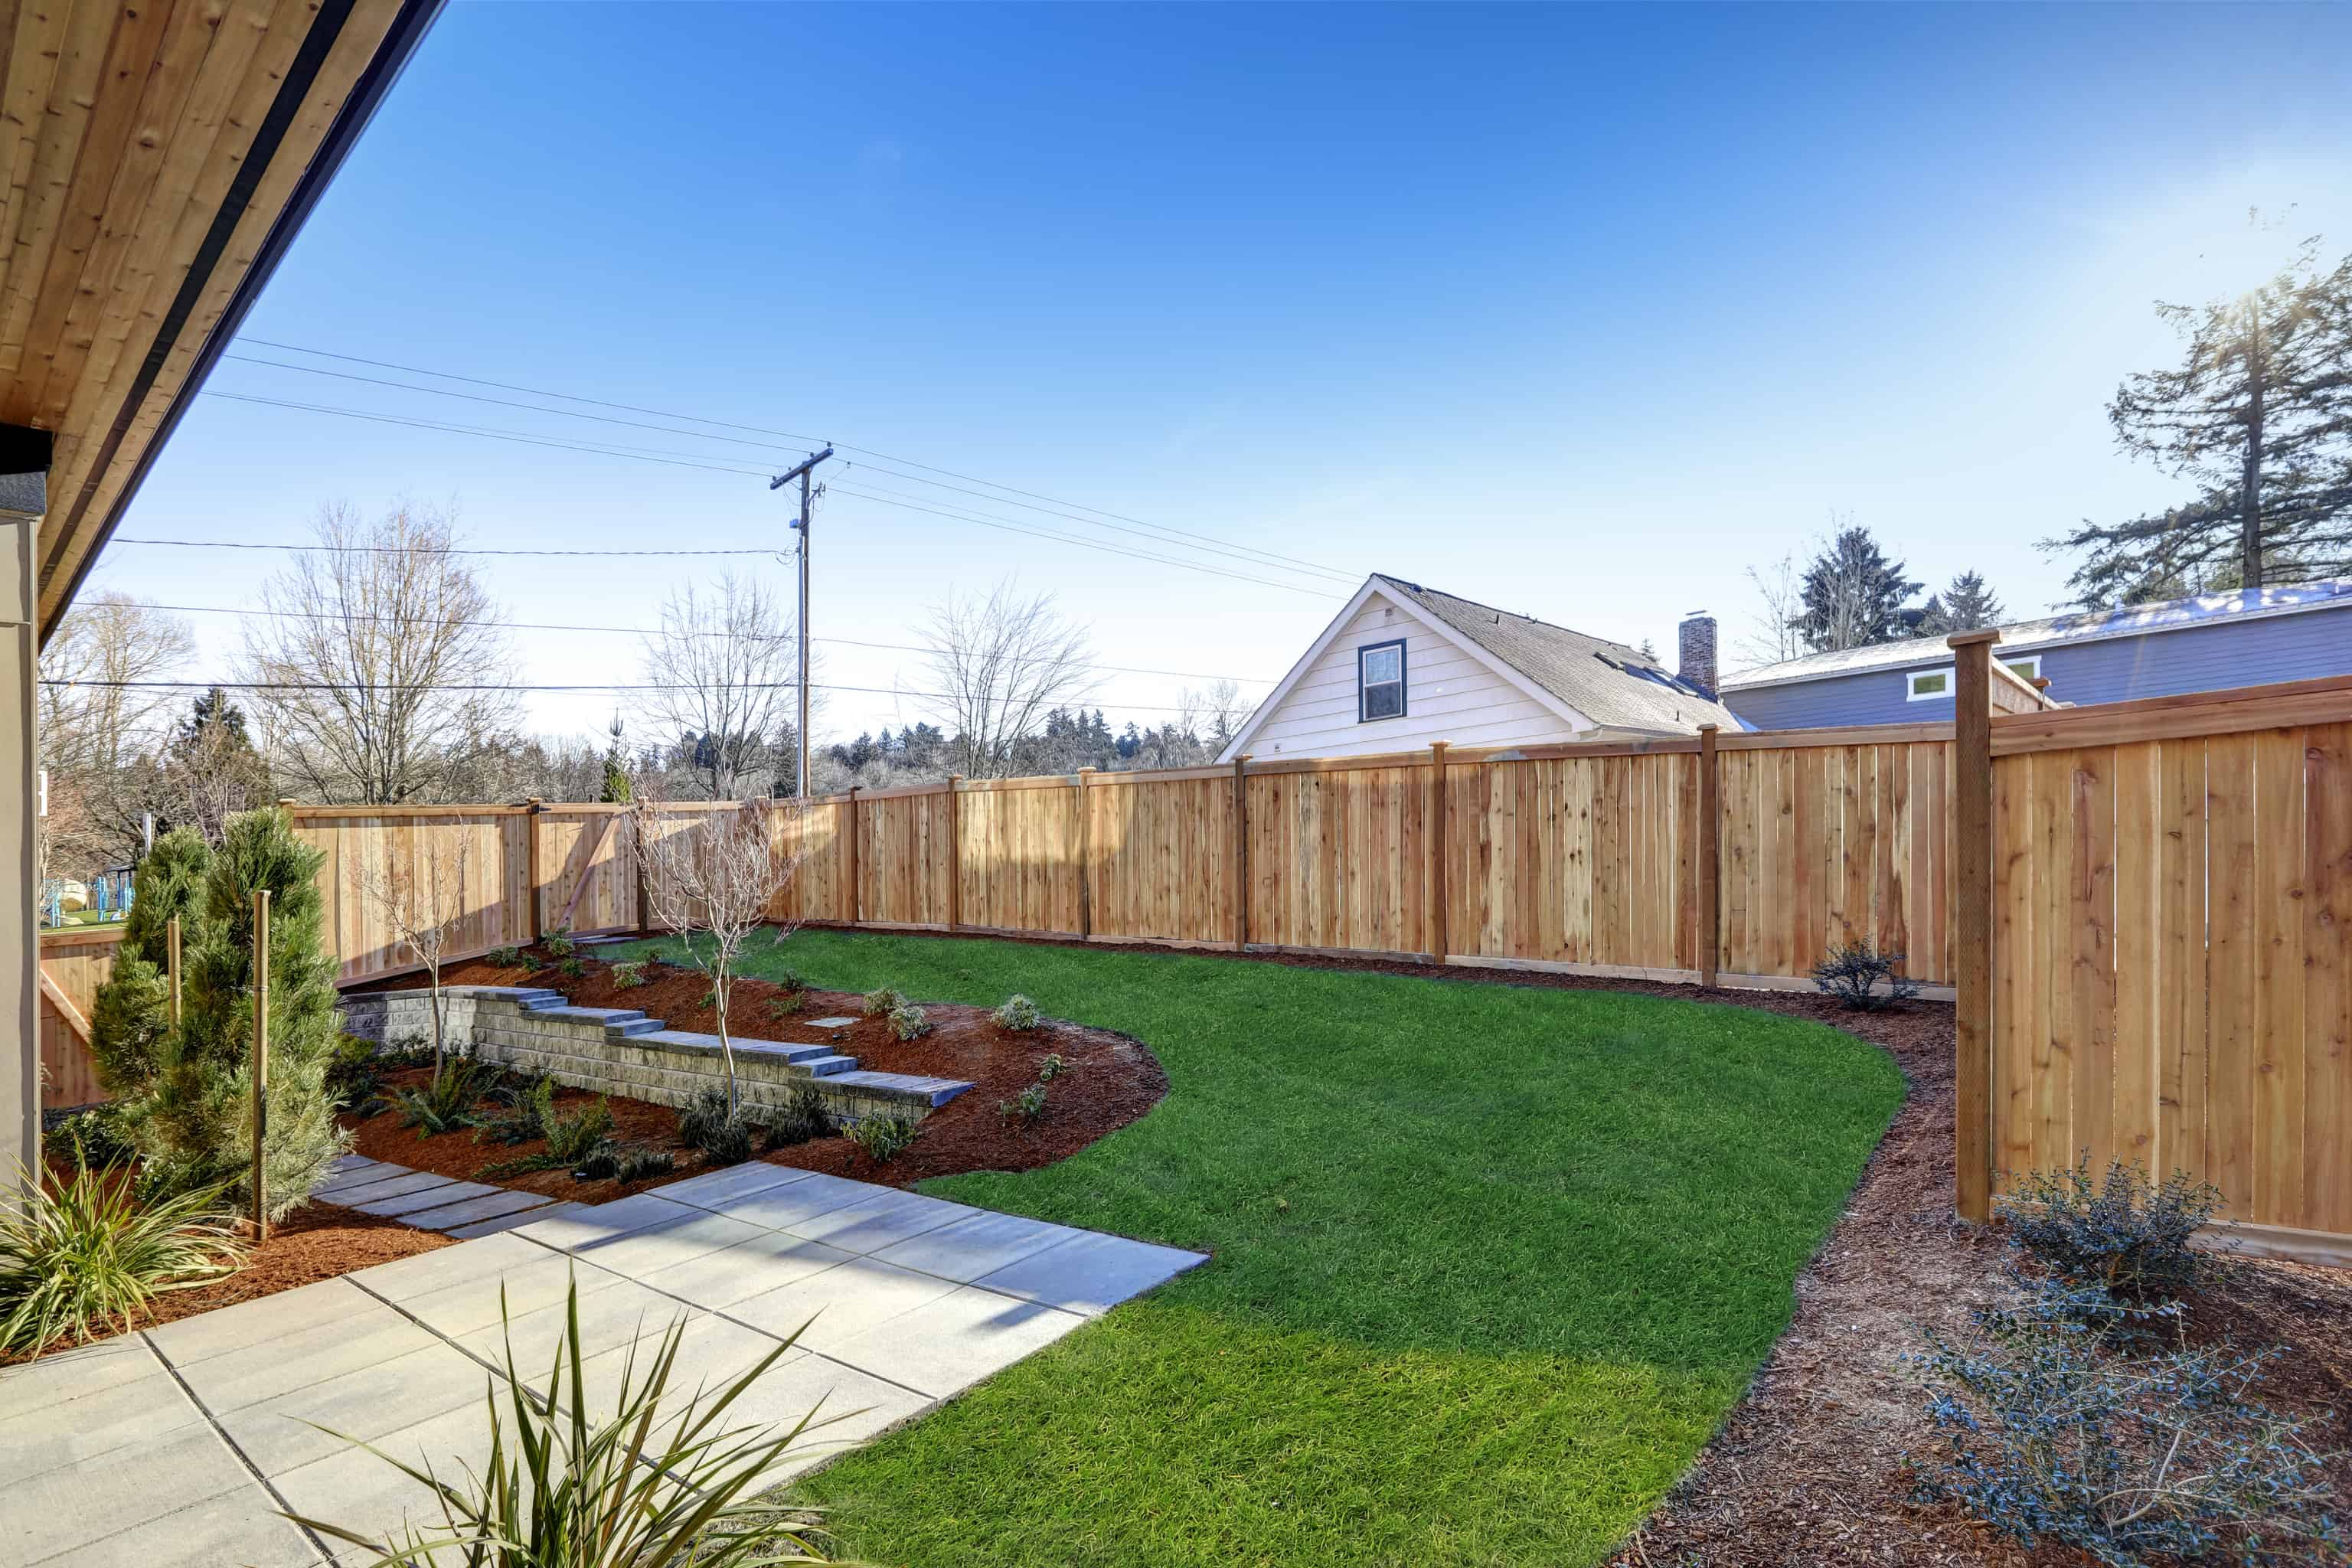 Sloped backyard surrounded by wooden fence.